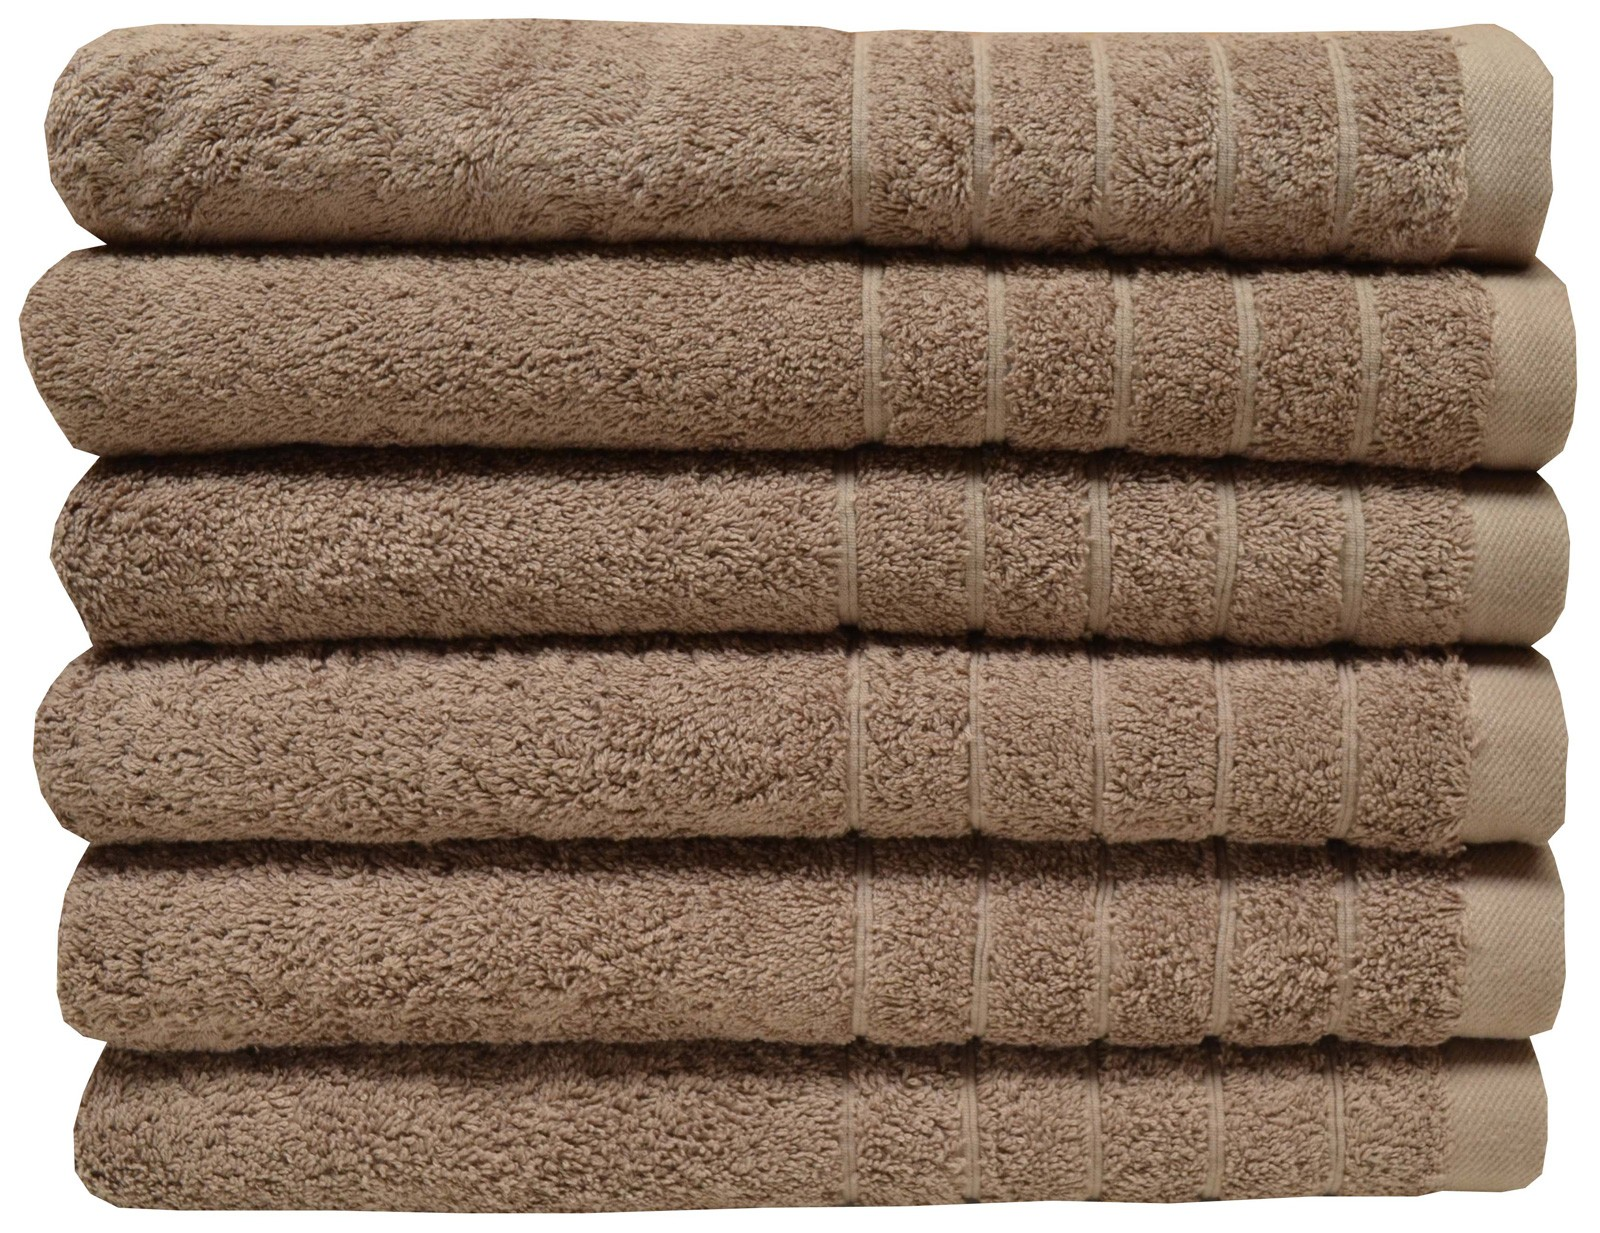 Egyptian cotton bath towel latte color